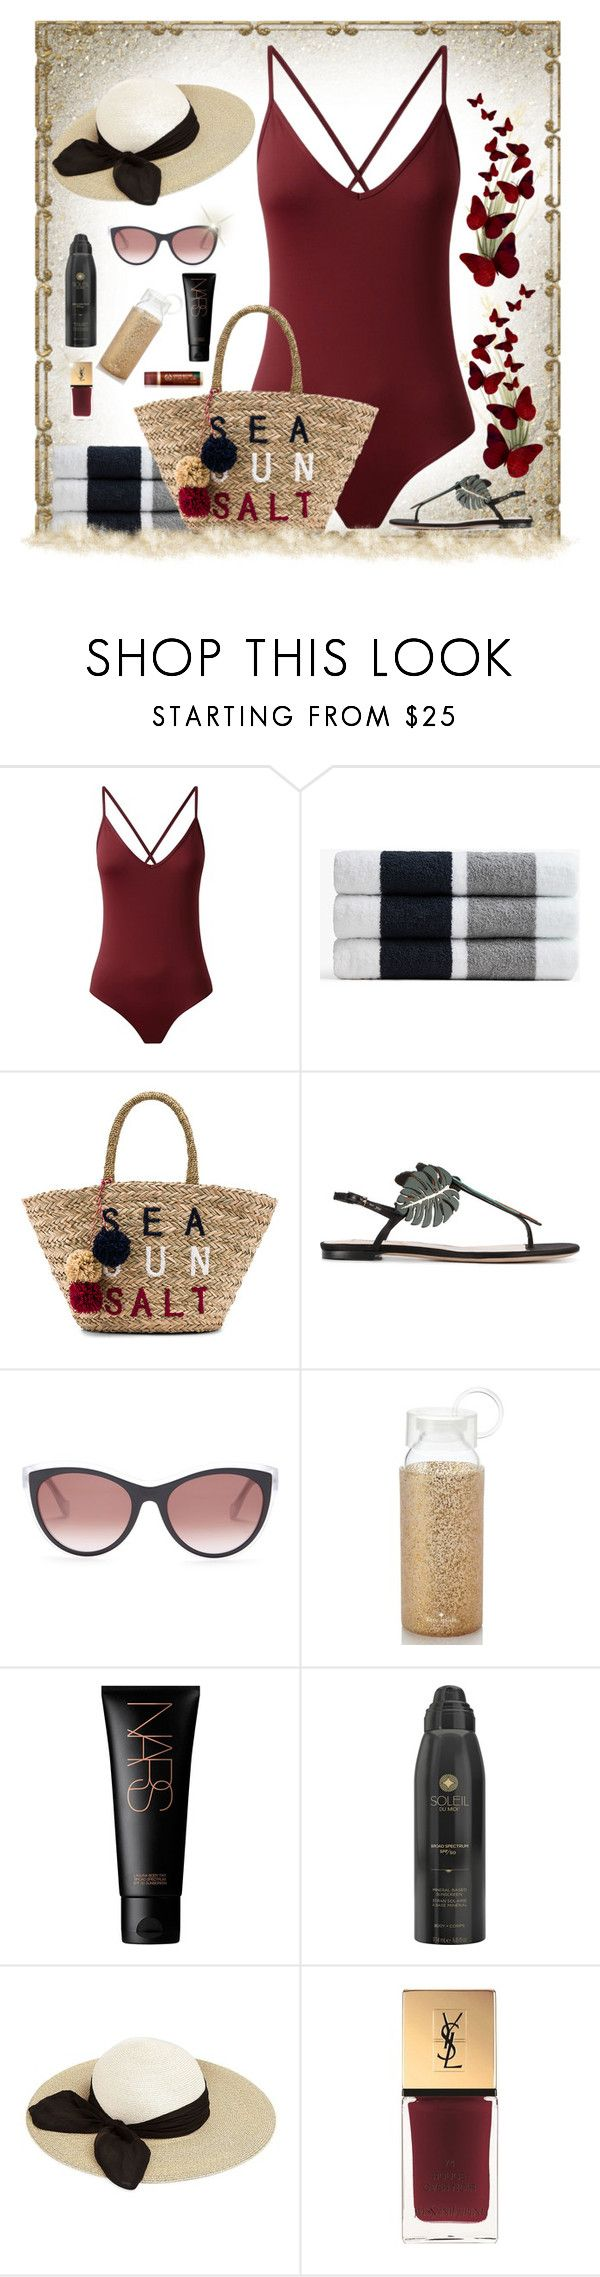 """Beach Bag"" by houston555-396 ❤ liked on Polyvore featuring James Perse, Sundry, Valentino, Balenciaga, Kate Spade, NARS Cosmetics, Soleil Toujours, Eugenia Kim and Yves Saint Laurent"